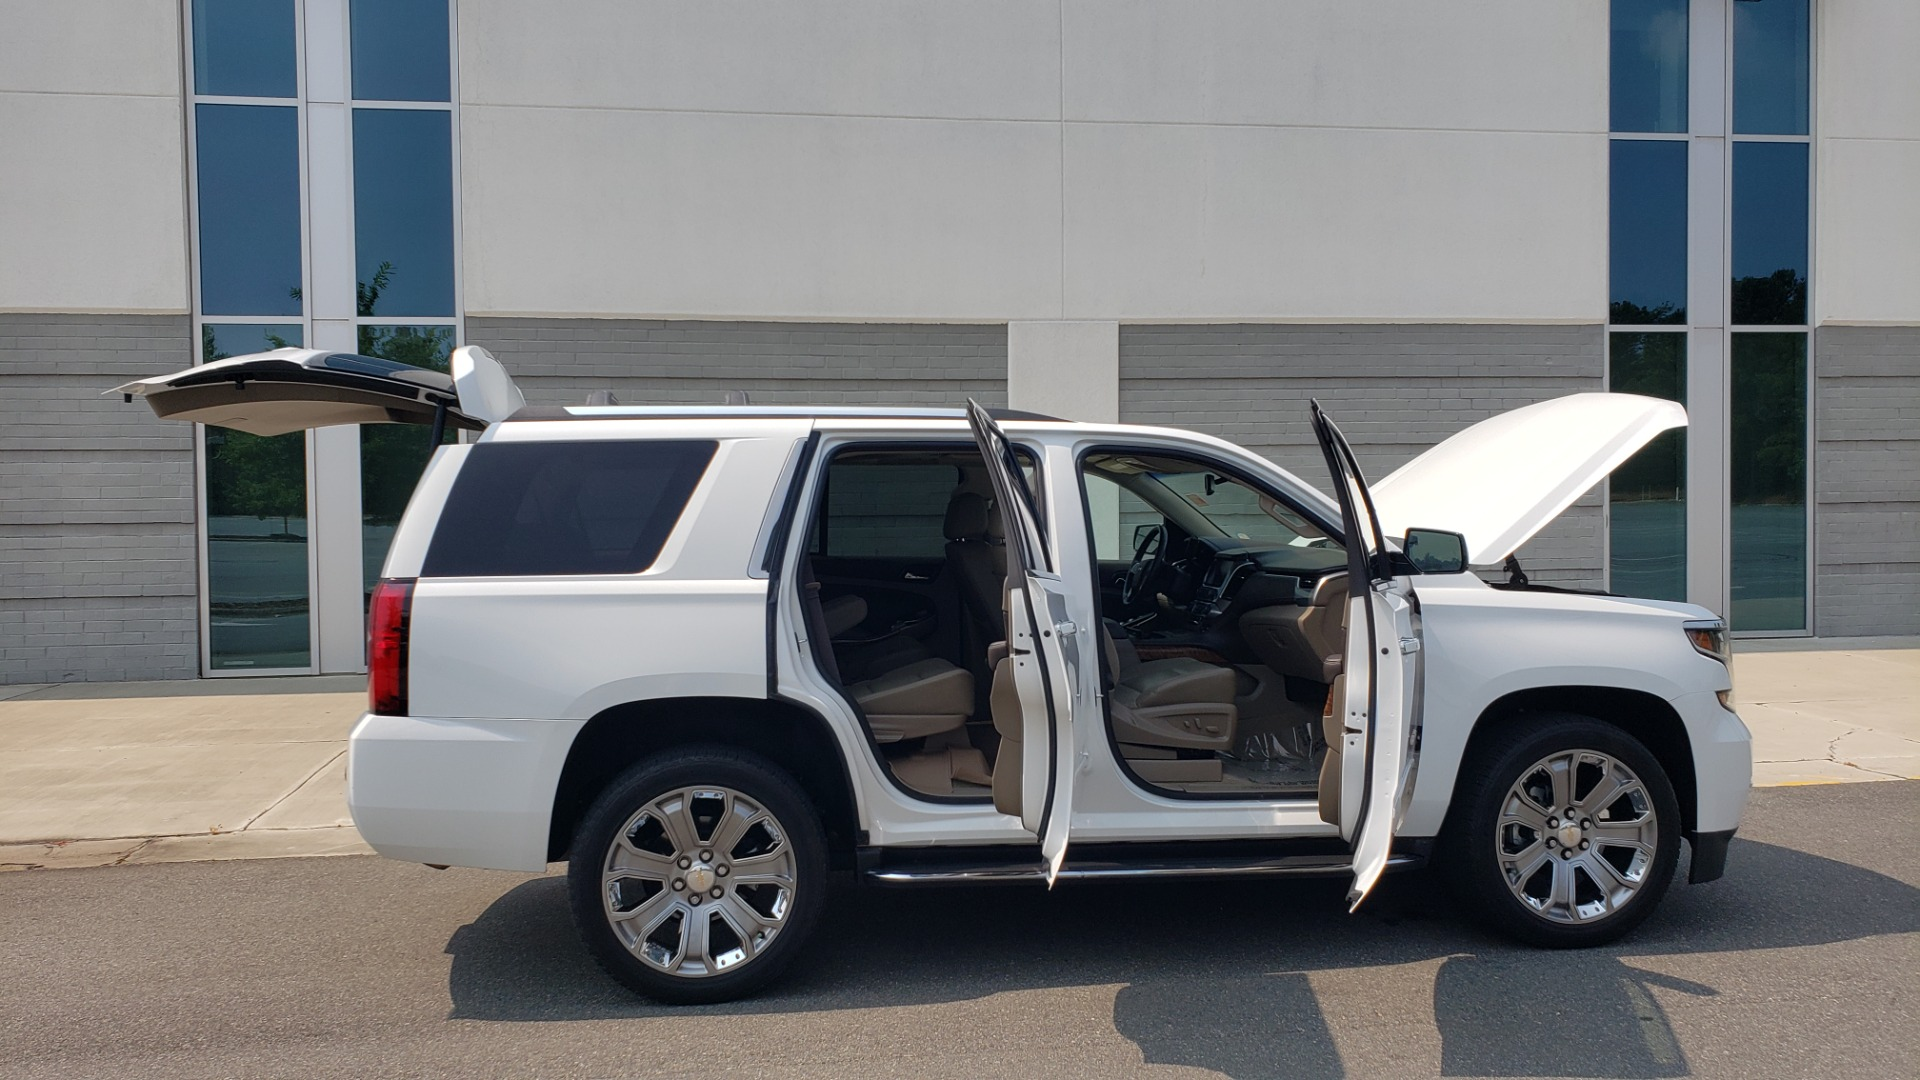 Used 2018 Chevrolet TAHOE PREMIER 4WD / NAV / SUNROOF / BOSE / 3-ROW / HUD / REARVIEW for sale $63,995 at Formula Imports in Charlotte NC 28227 12